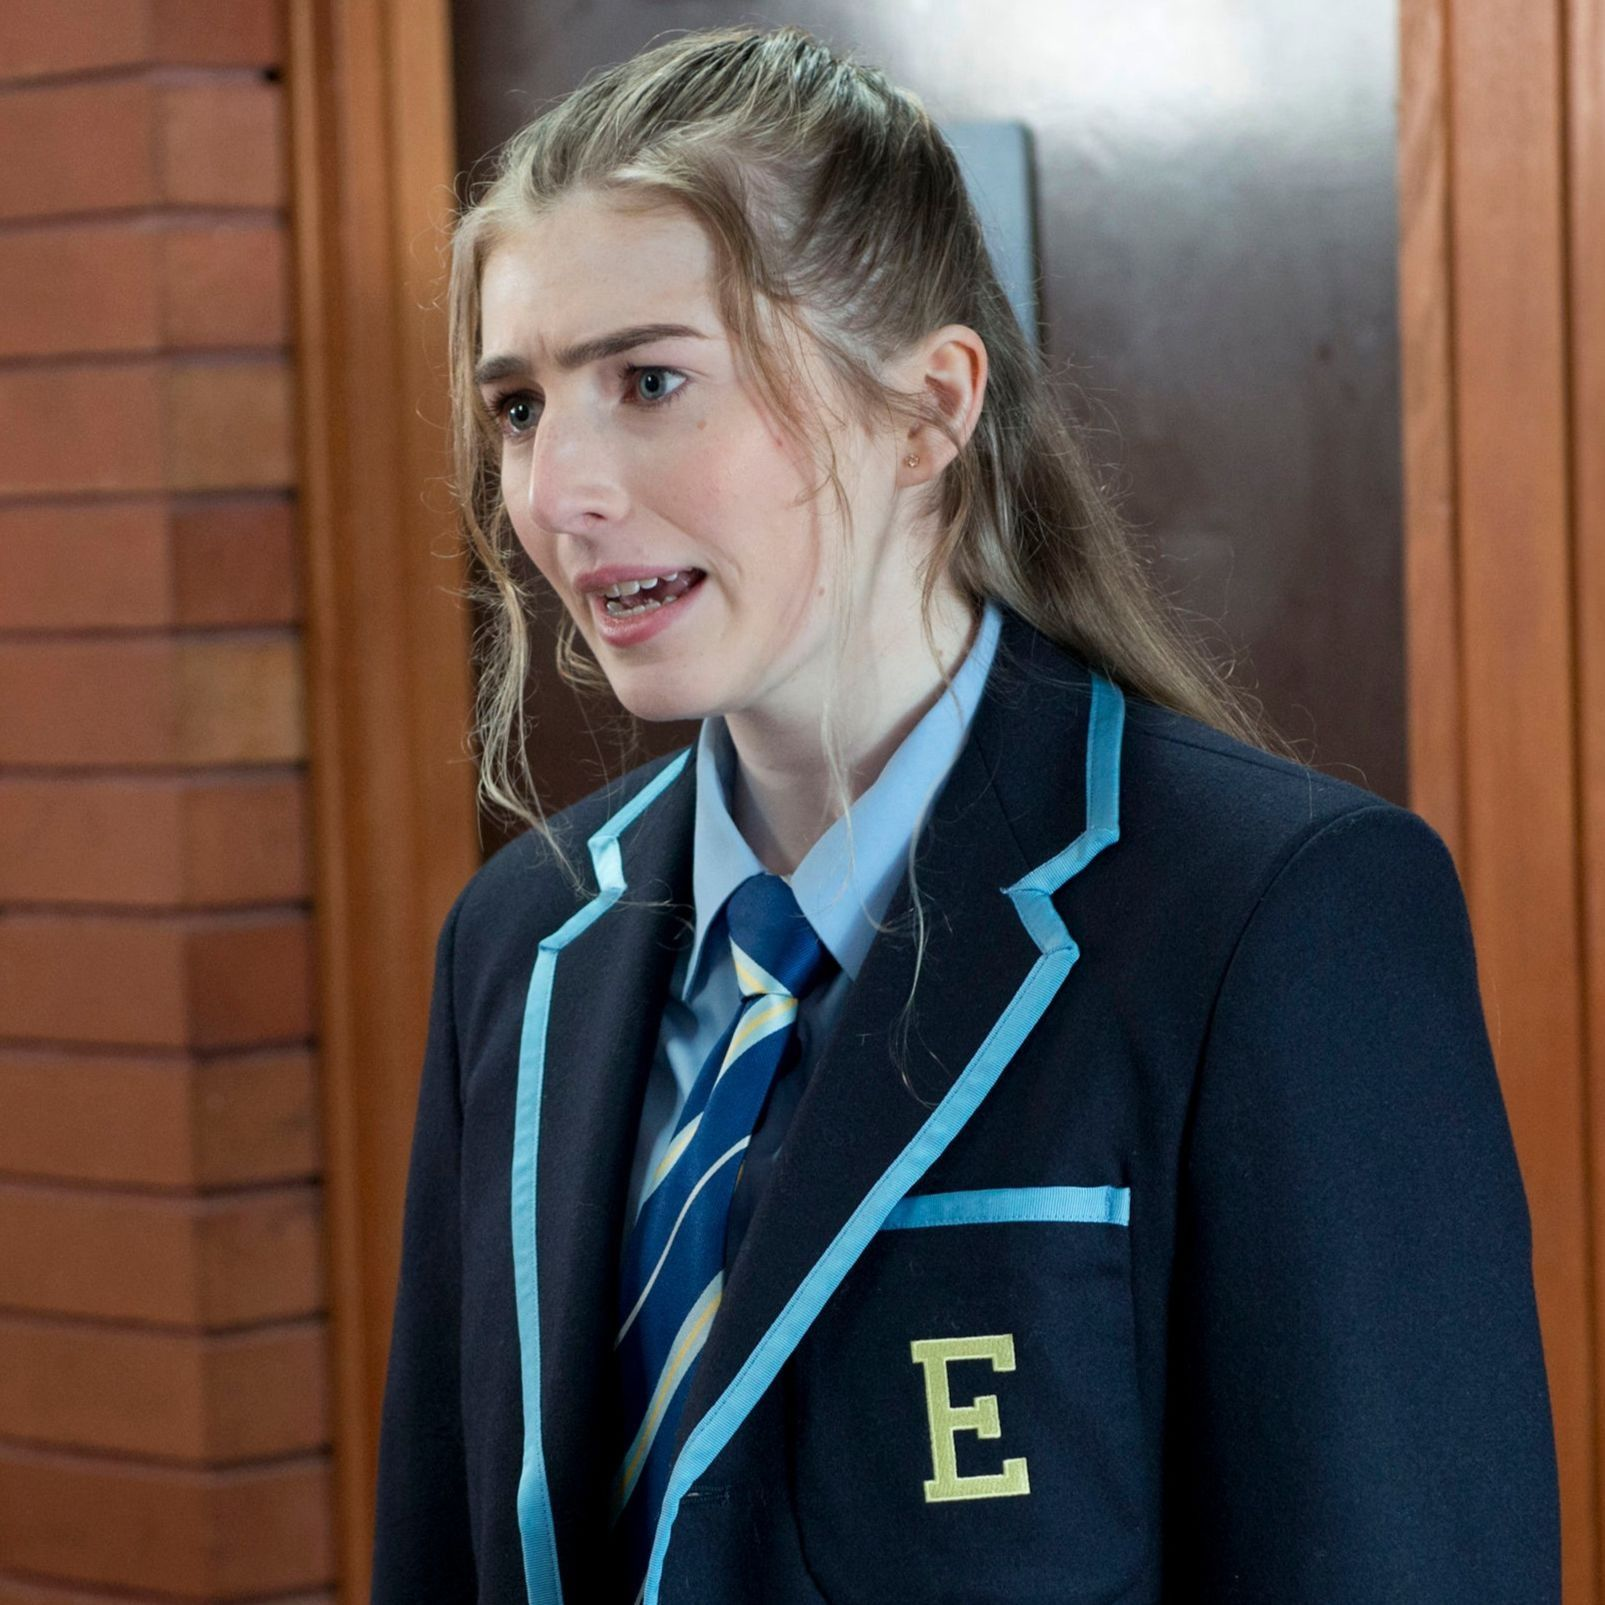 Neighbours to explore transphobia as Mackenzie Hargreaves' past is revealed